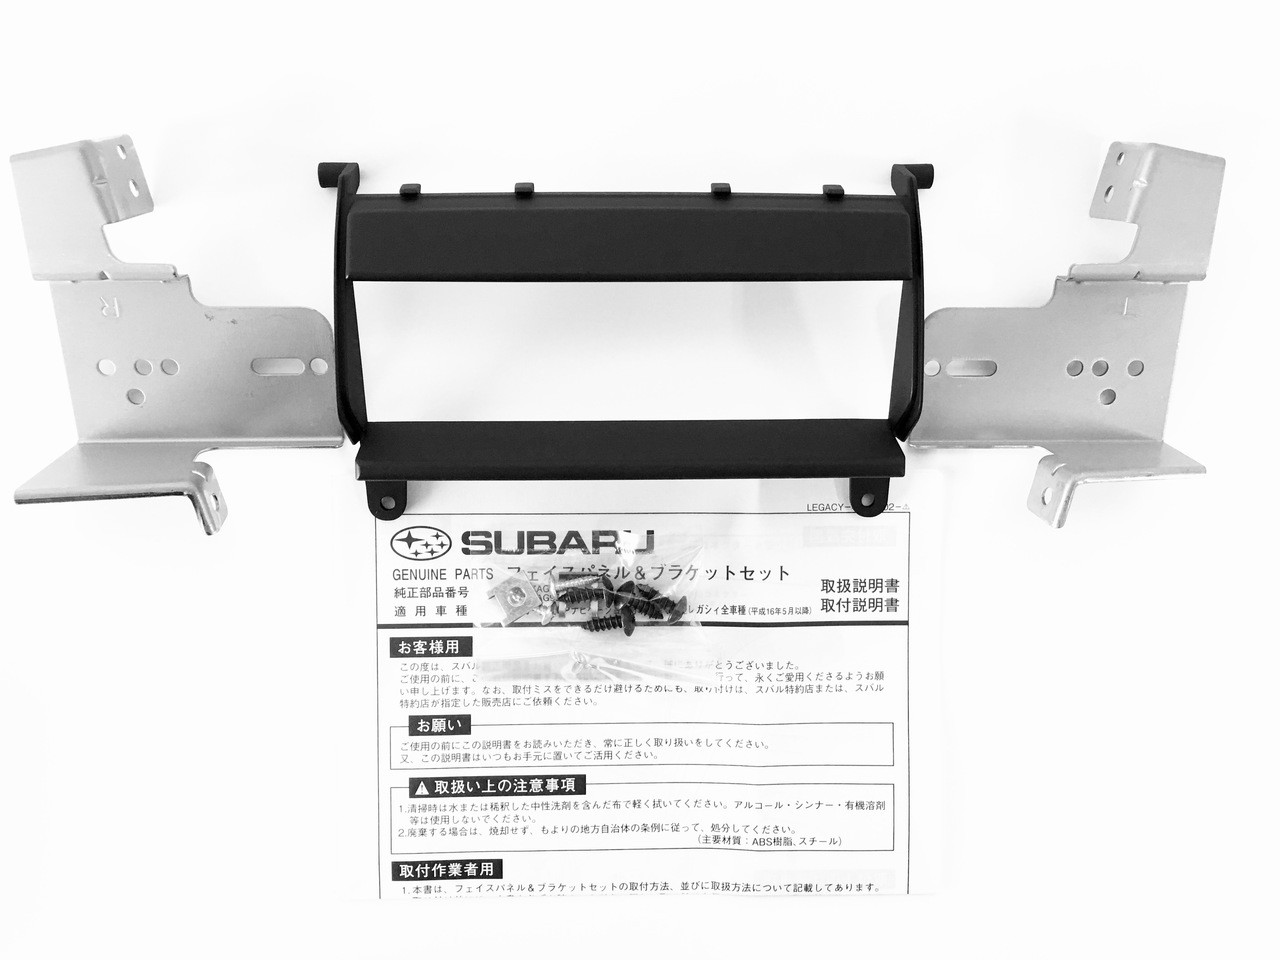 Subaru JDM Single Din Console Panel Adapter H0017AG920 set contents at AVOJDM.com